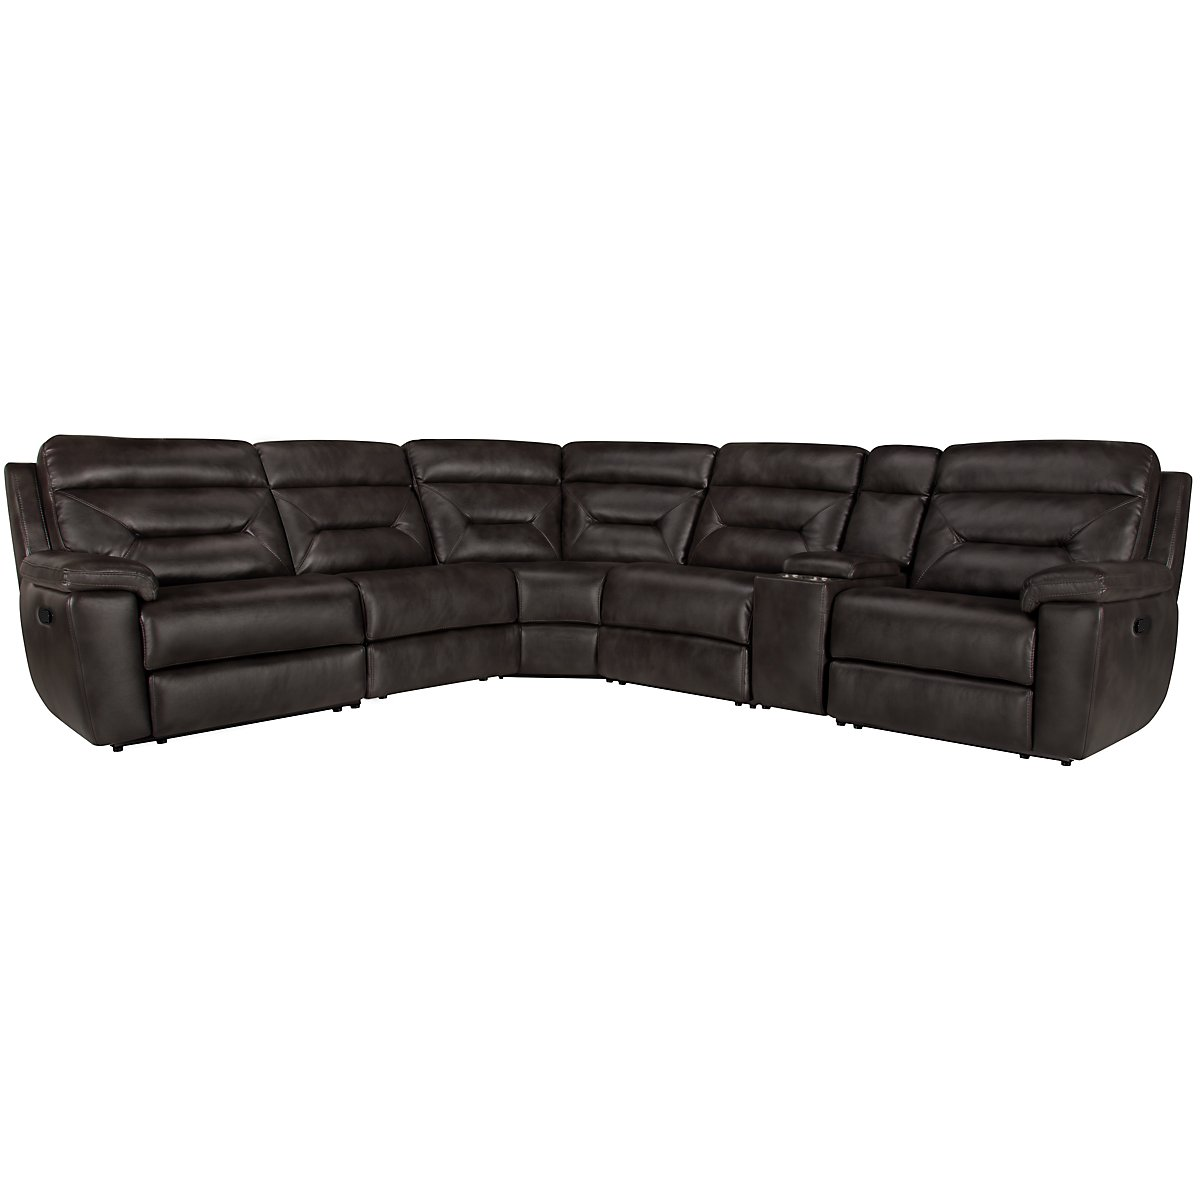 Phoenix Dark Gray Microfiber Small Two-Arm Manually Reclining Sectional